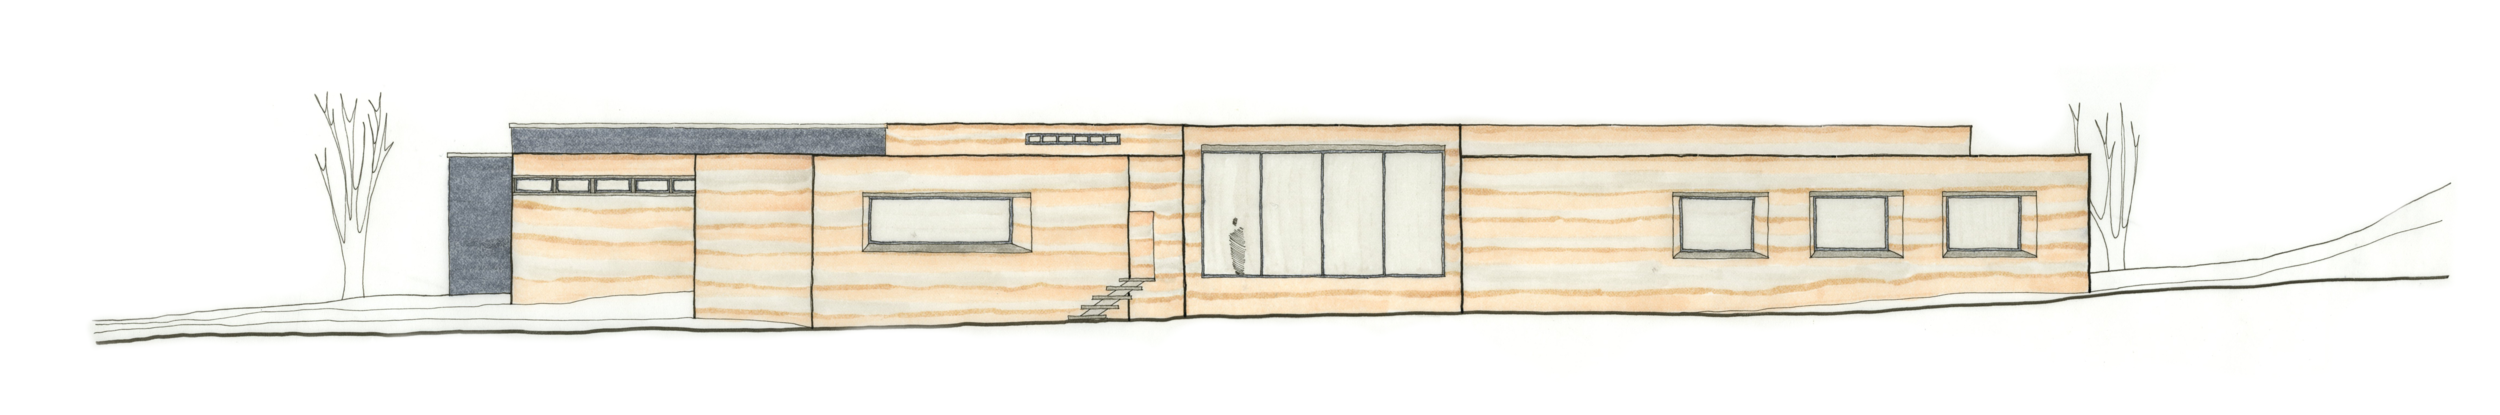 South elevation of proposed rammed earth addition.